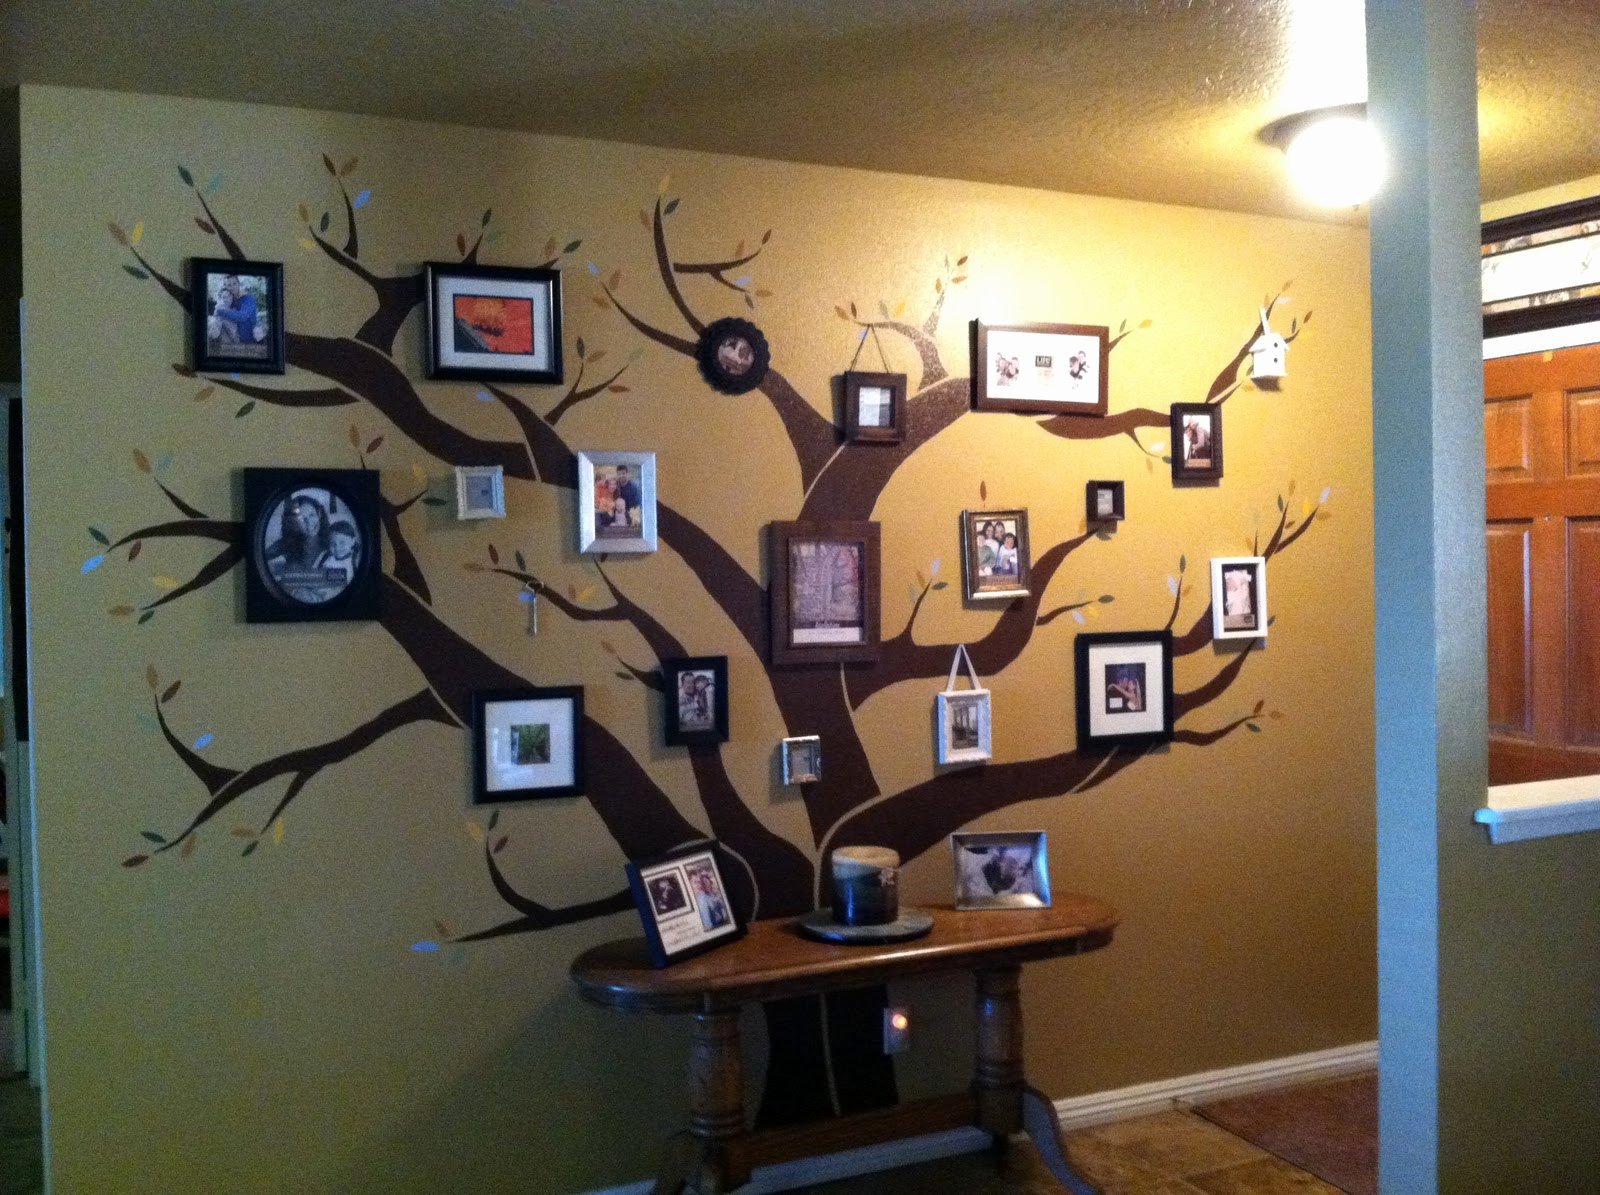 Family Tree Photo Collage Luxury while Adam S Sleeping It S Only 8pm Diy Family Tree Wall Collage